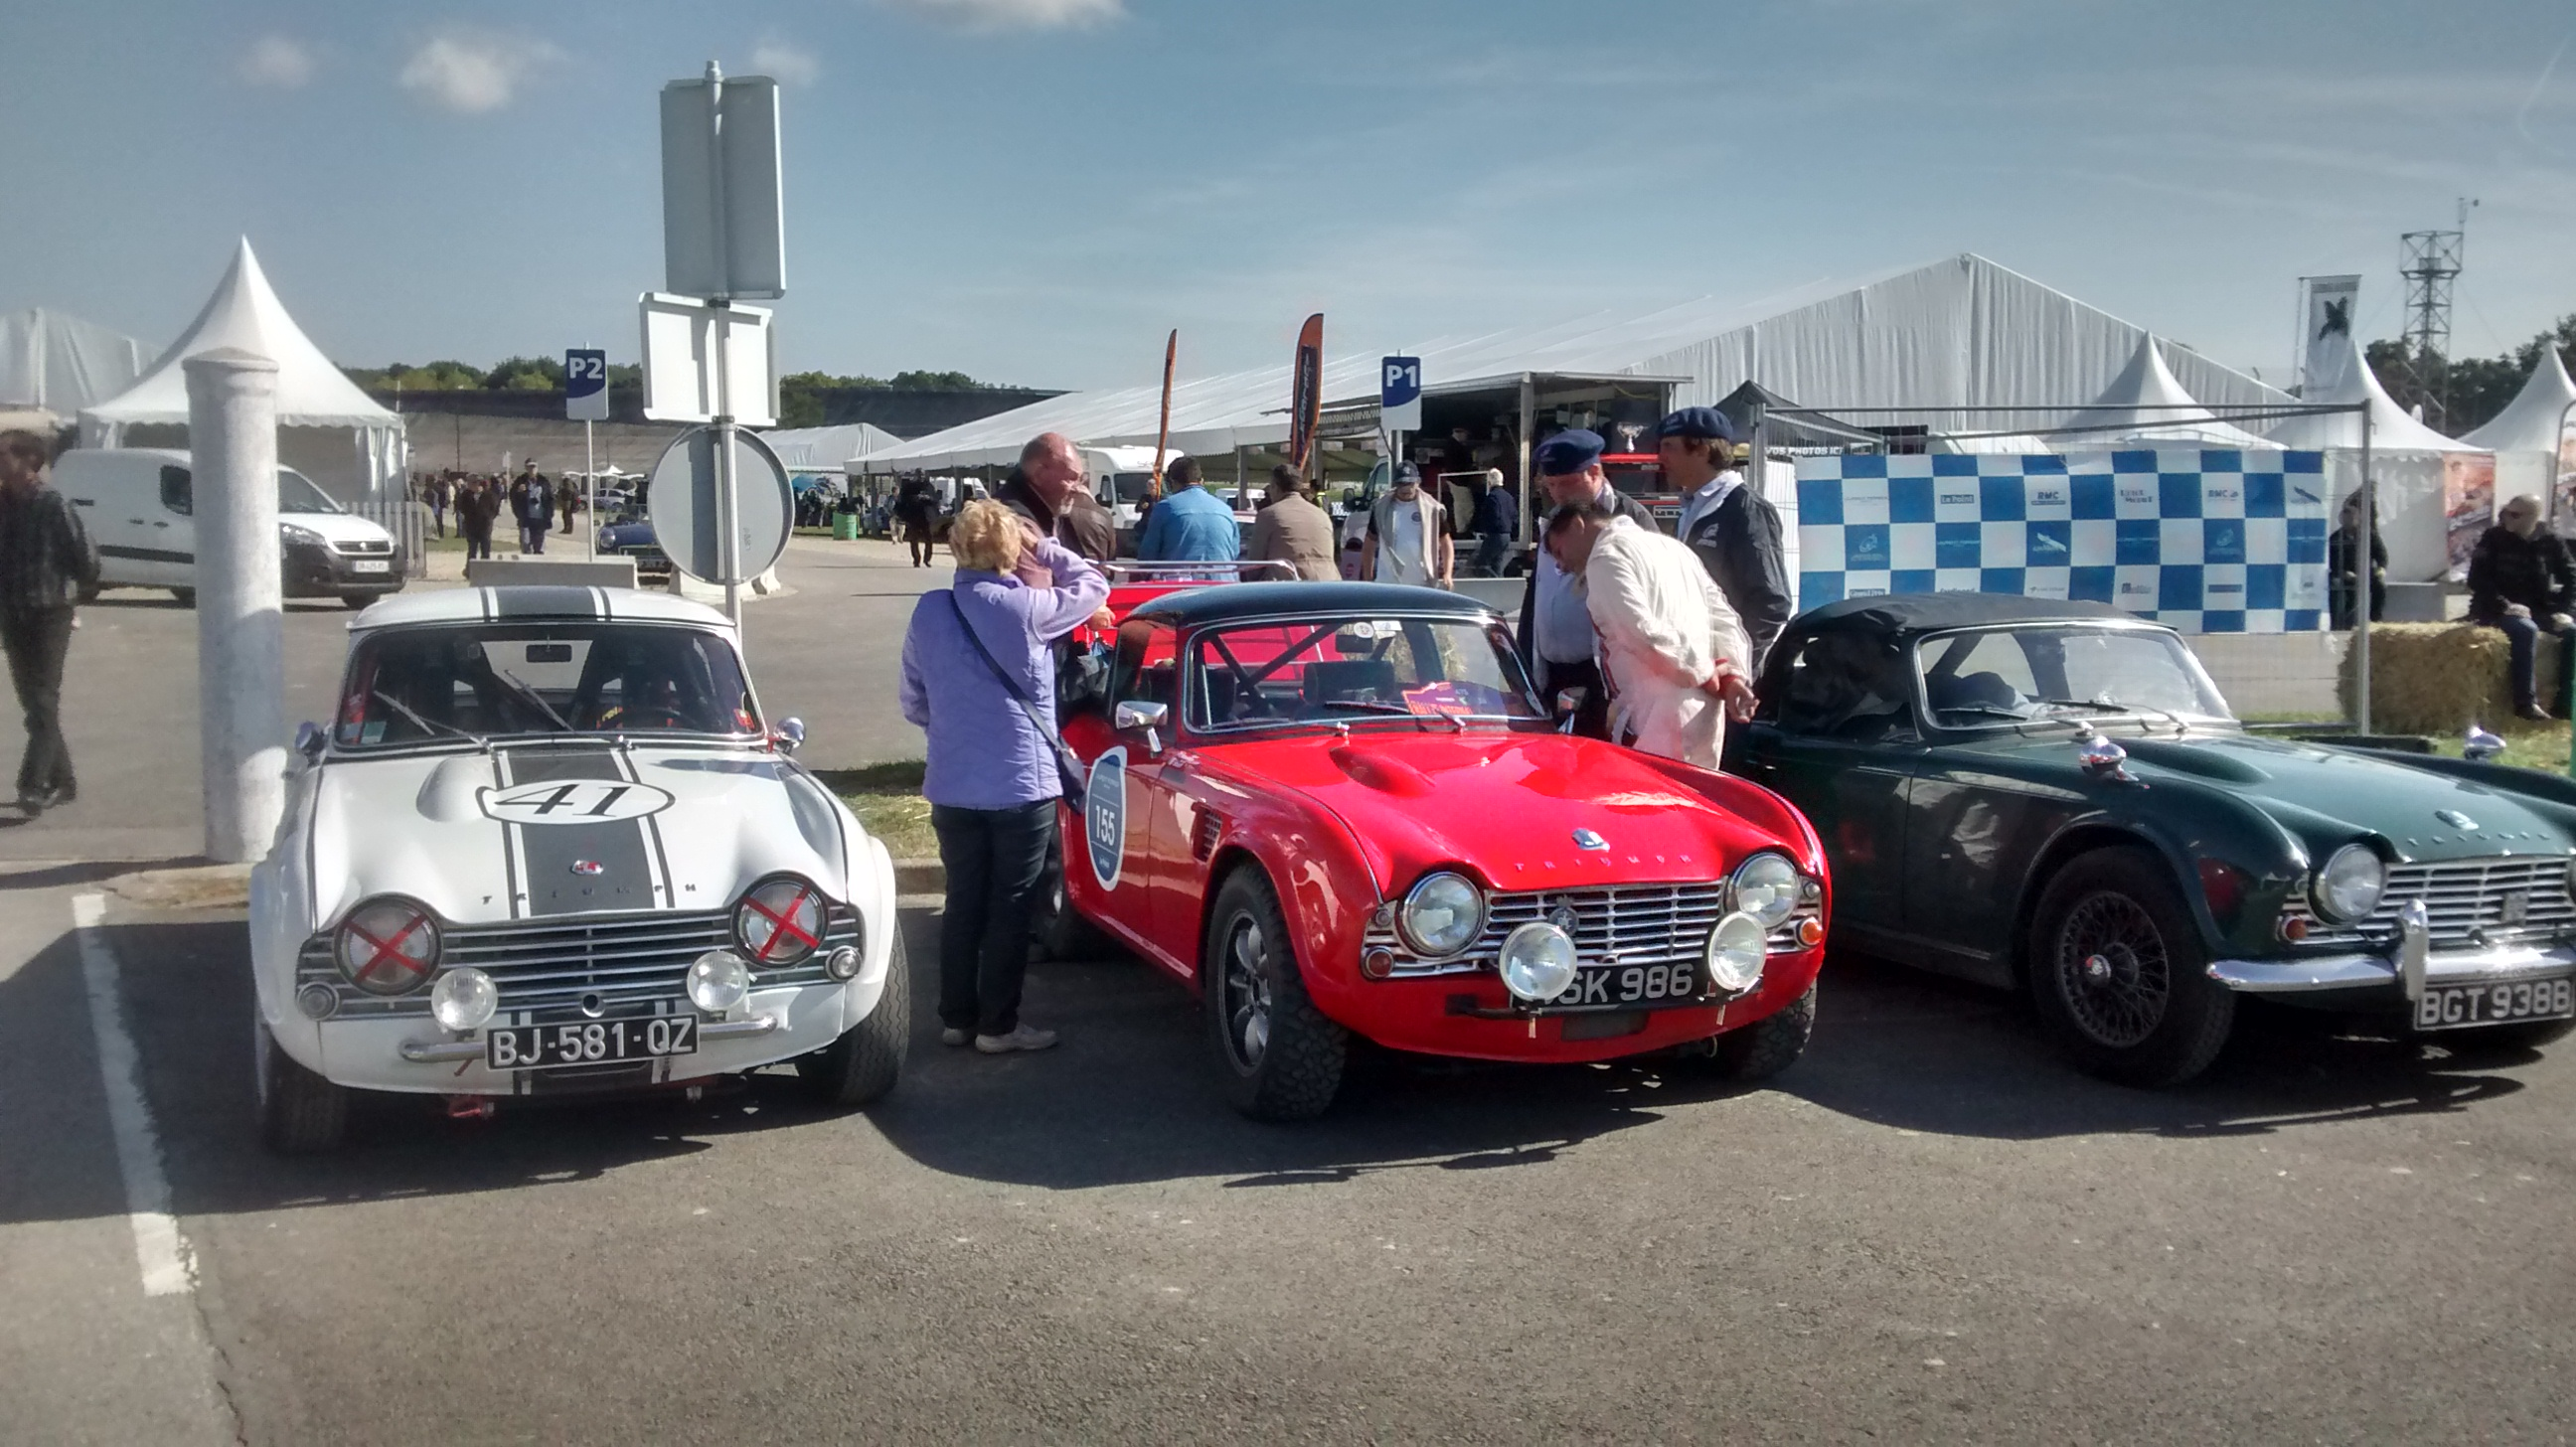 In the Paddock at Monthlhery